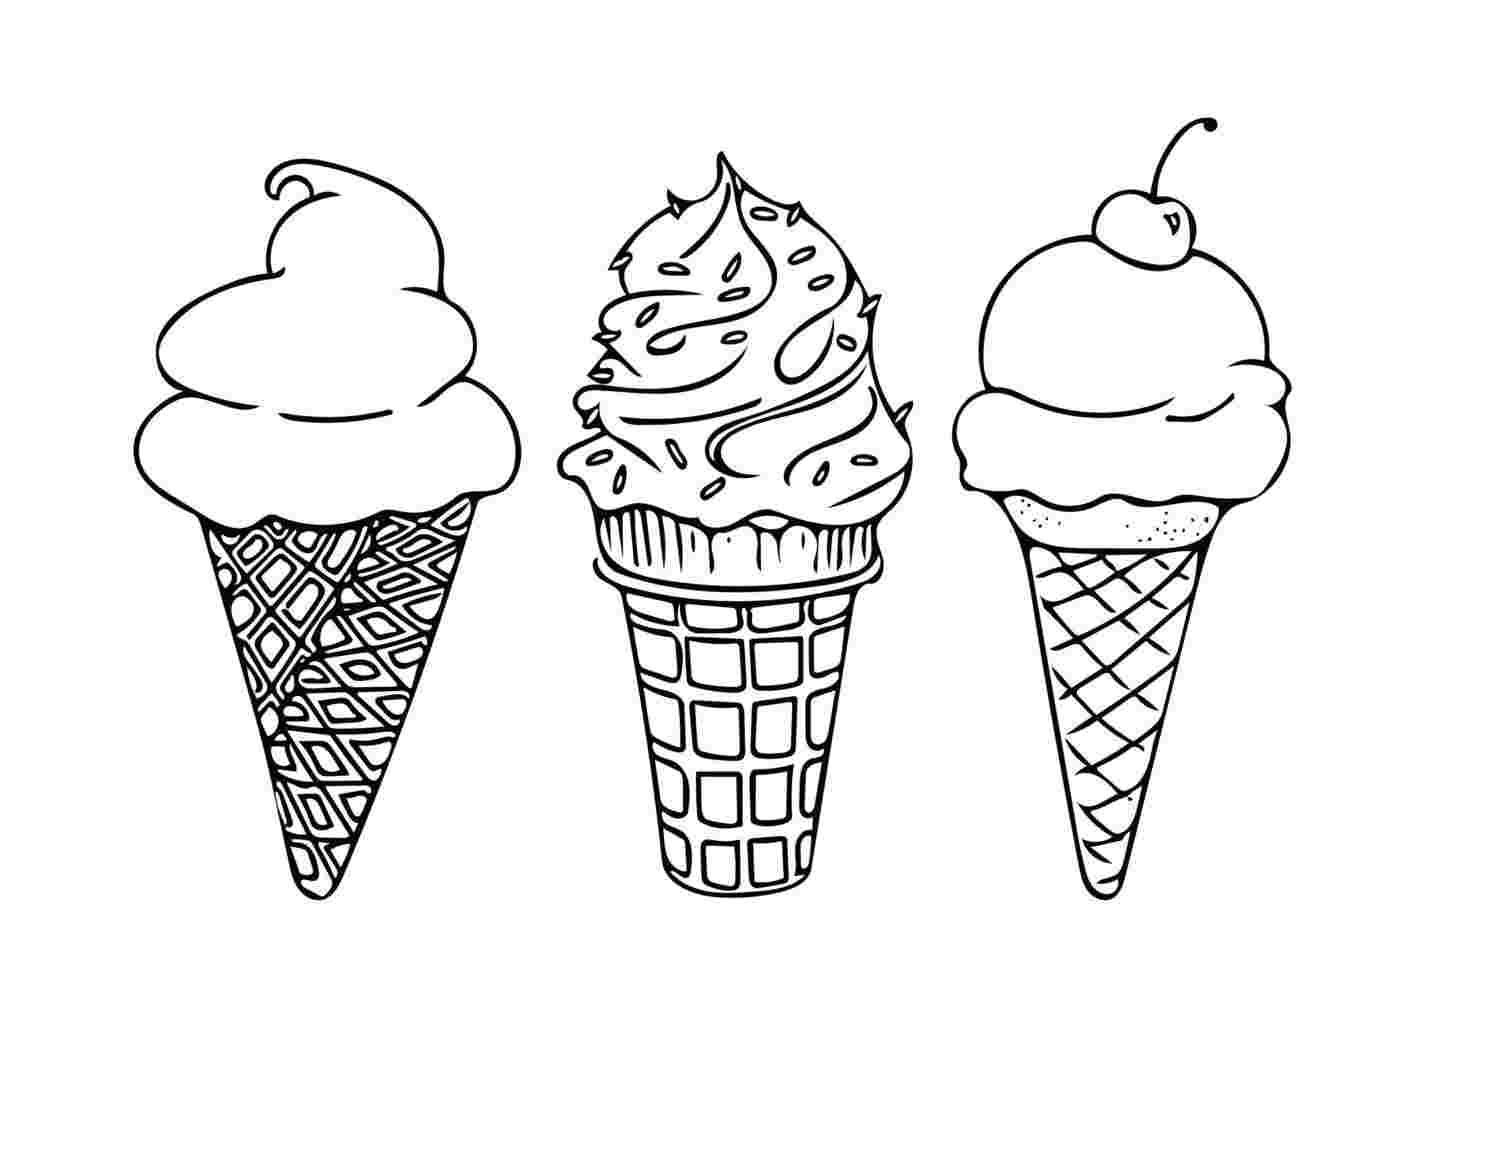 Ice Cream Coloring Pages Printable The Meaning Of The Name Ice Cream Varies From One Count In 2020 Ice Cream Coloring Pages Ice Cream Tattoo Printable Tattoos